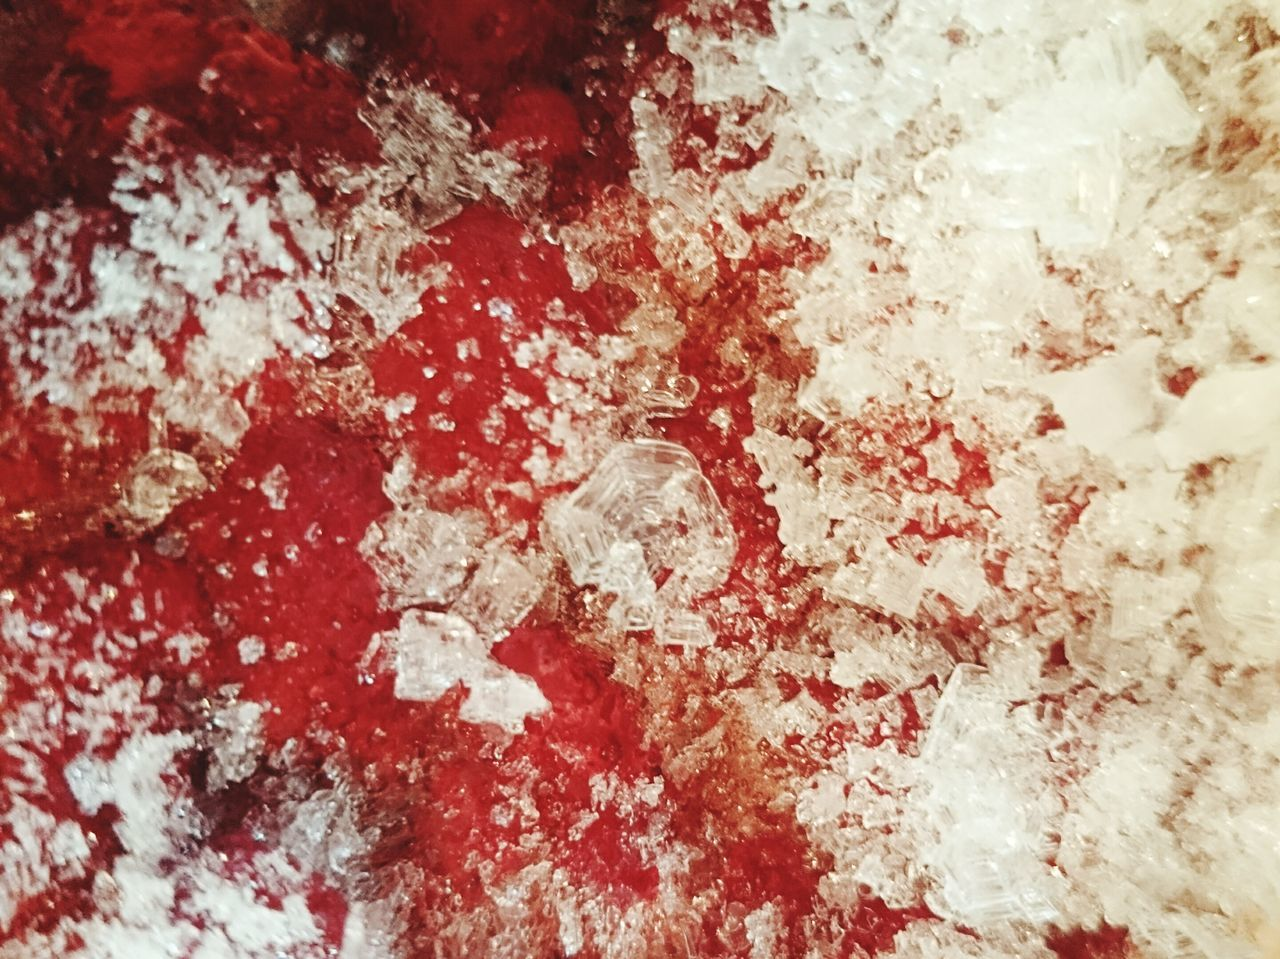 BLOODY Guess What ...? Frozen Strawberries Ice Crystal Freeze Bloodyred Guess Icecrystals Red And White Snowwhite